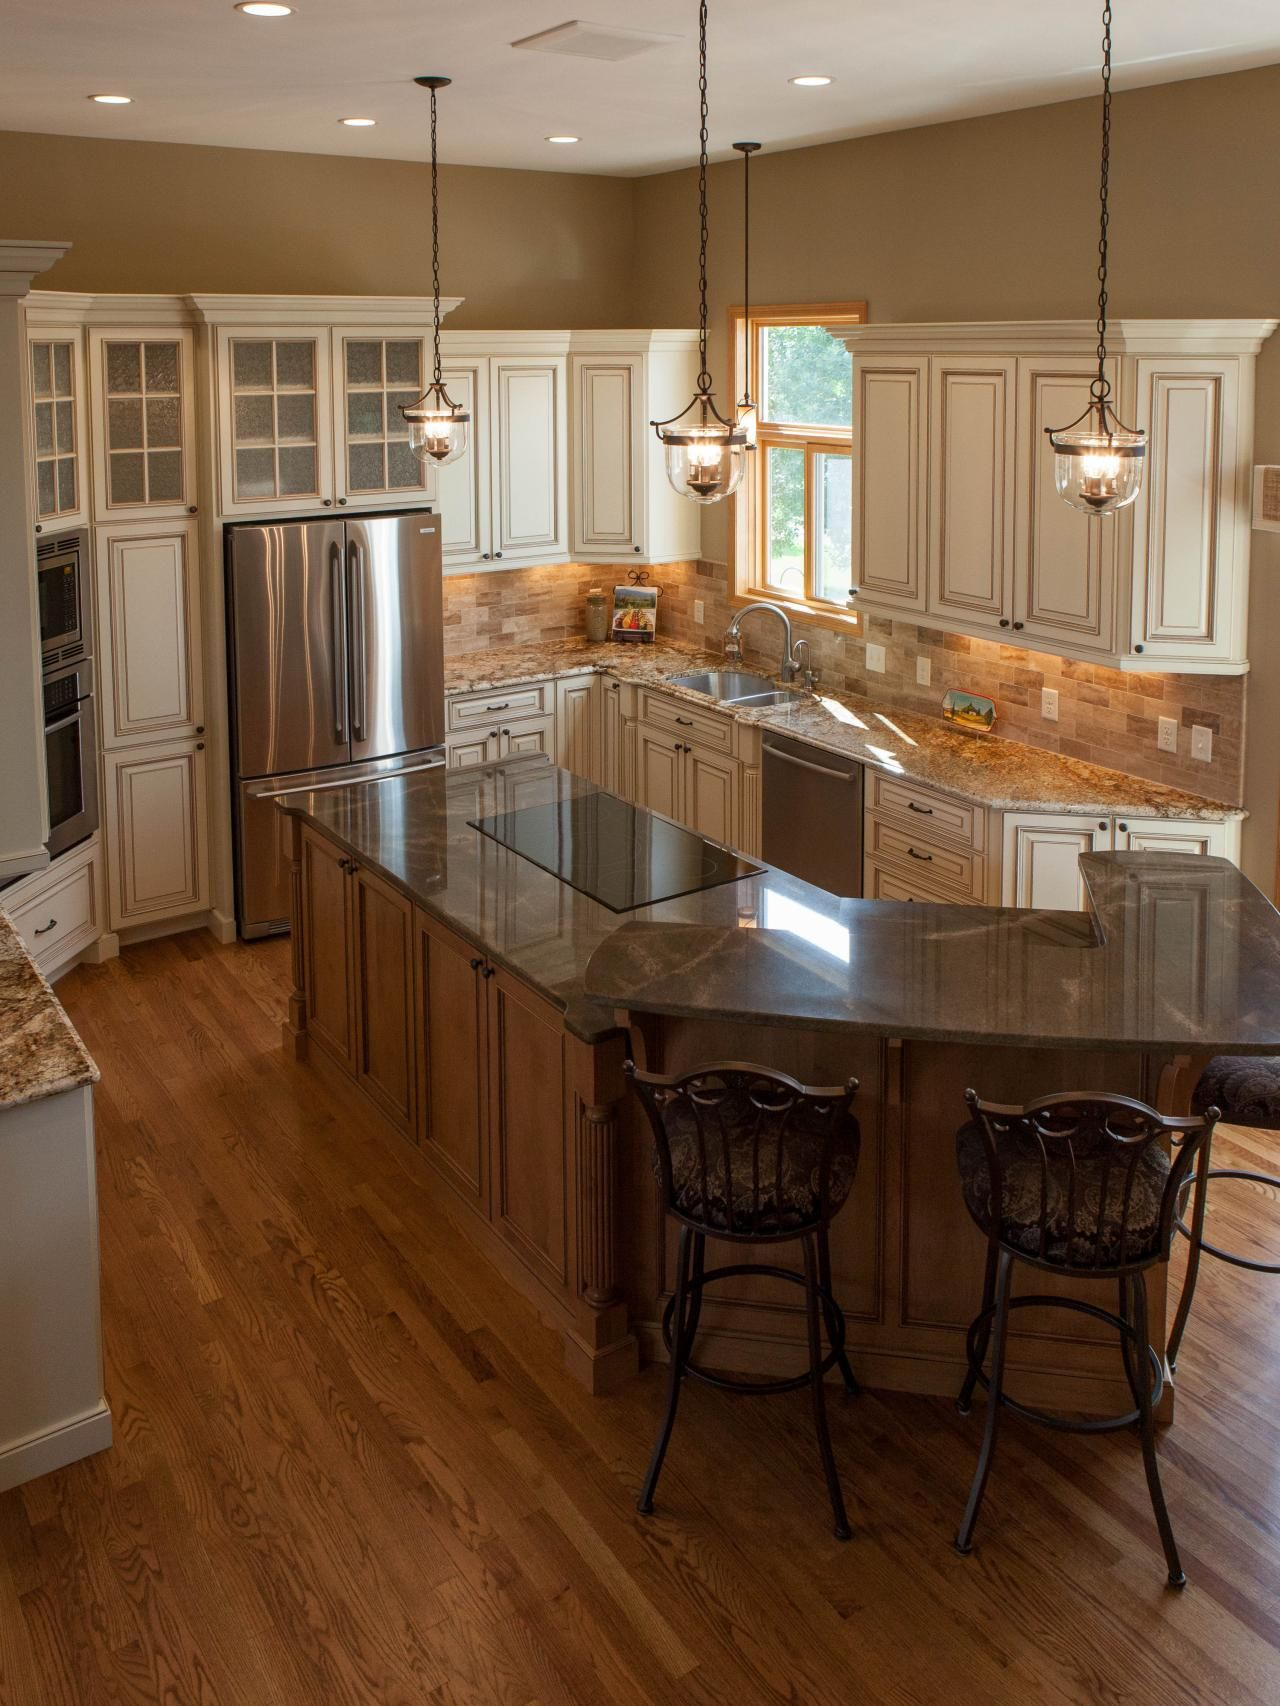 Traditional tuscan kitchen makeover cabinets islands and tuscan